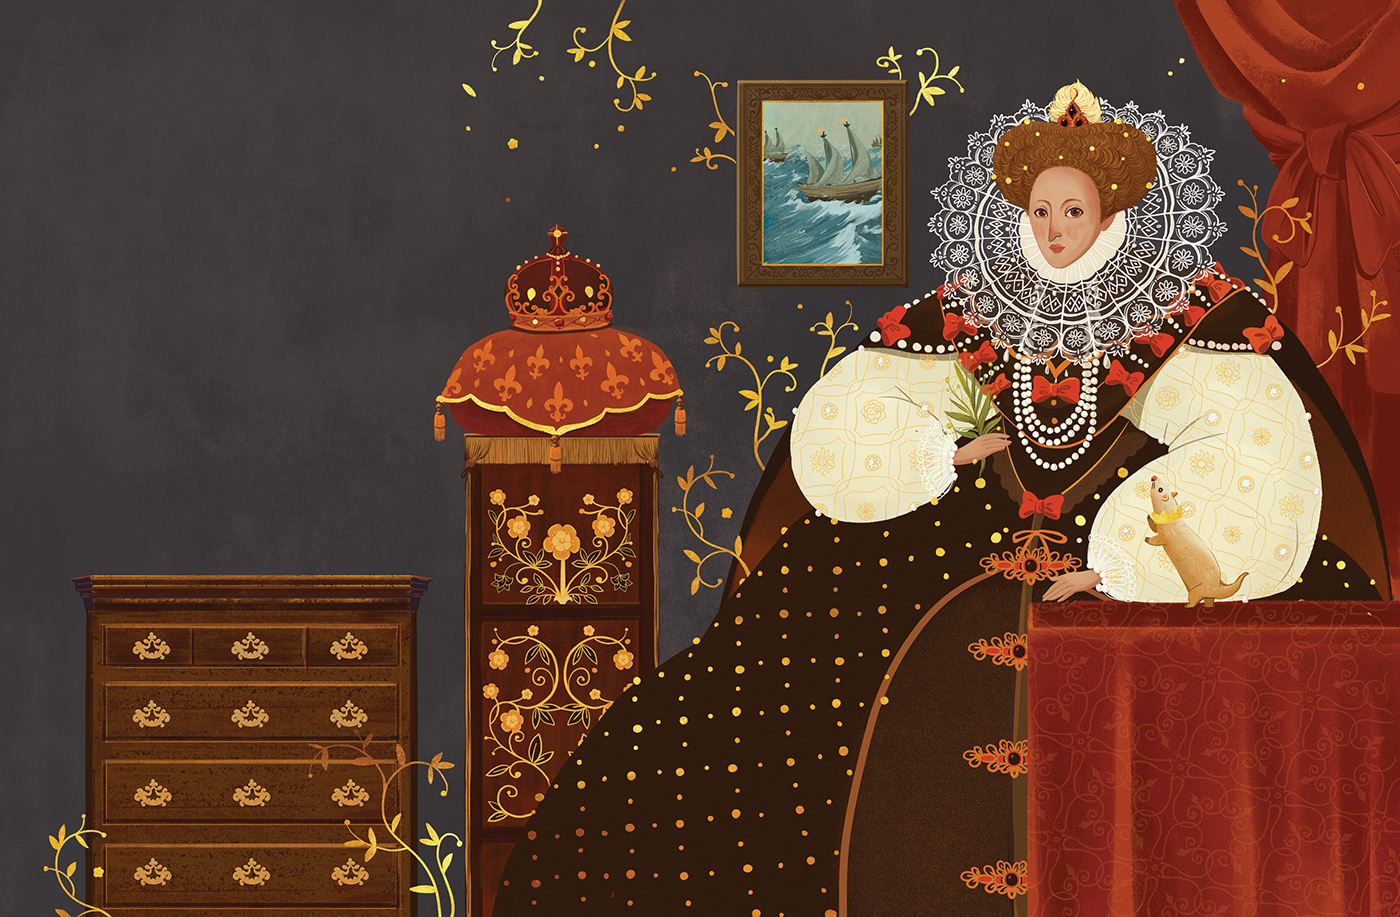 digital illustration art queen elizabeth1 by kaa